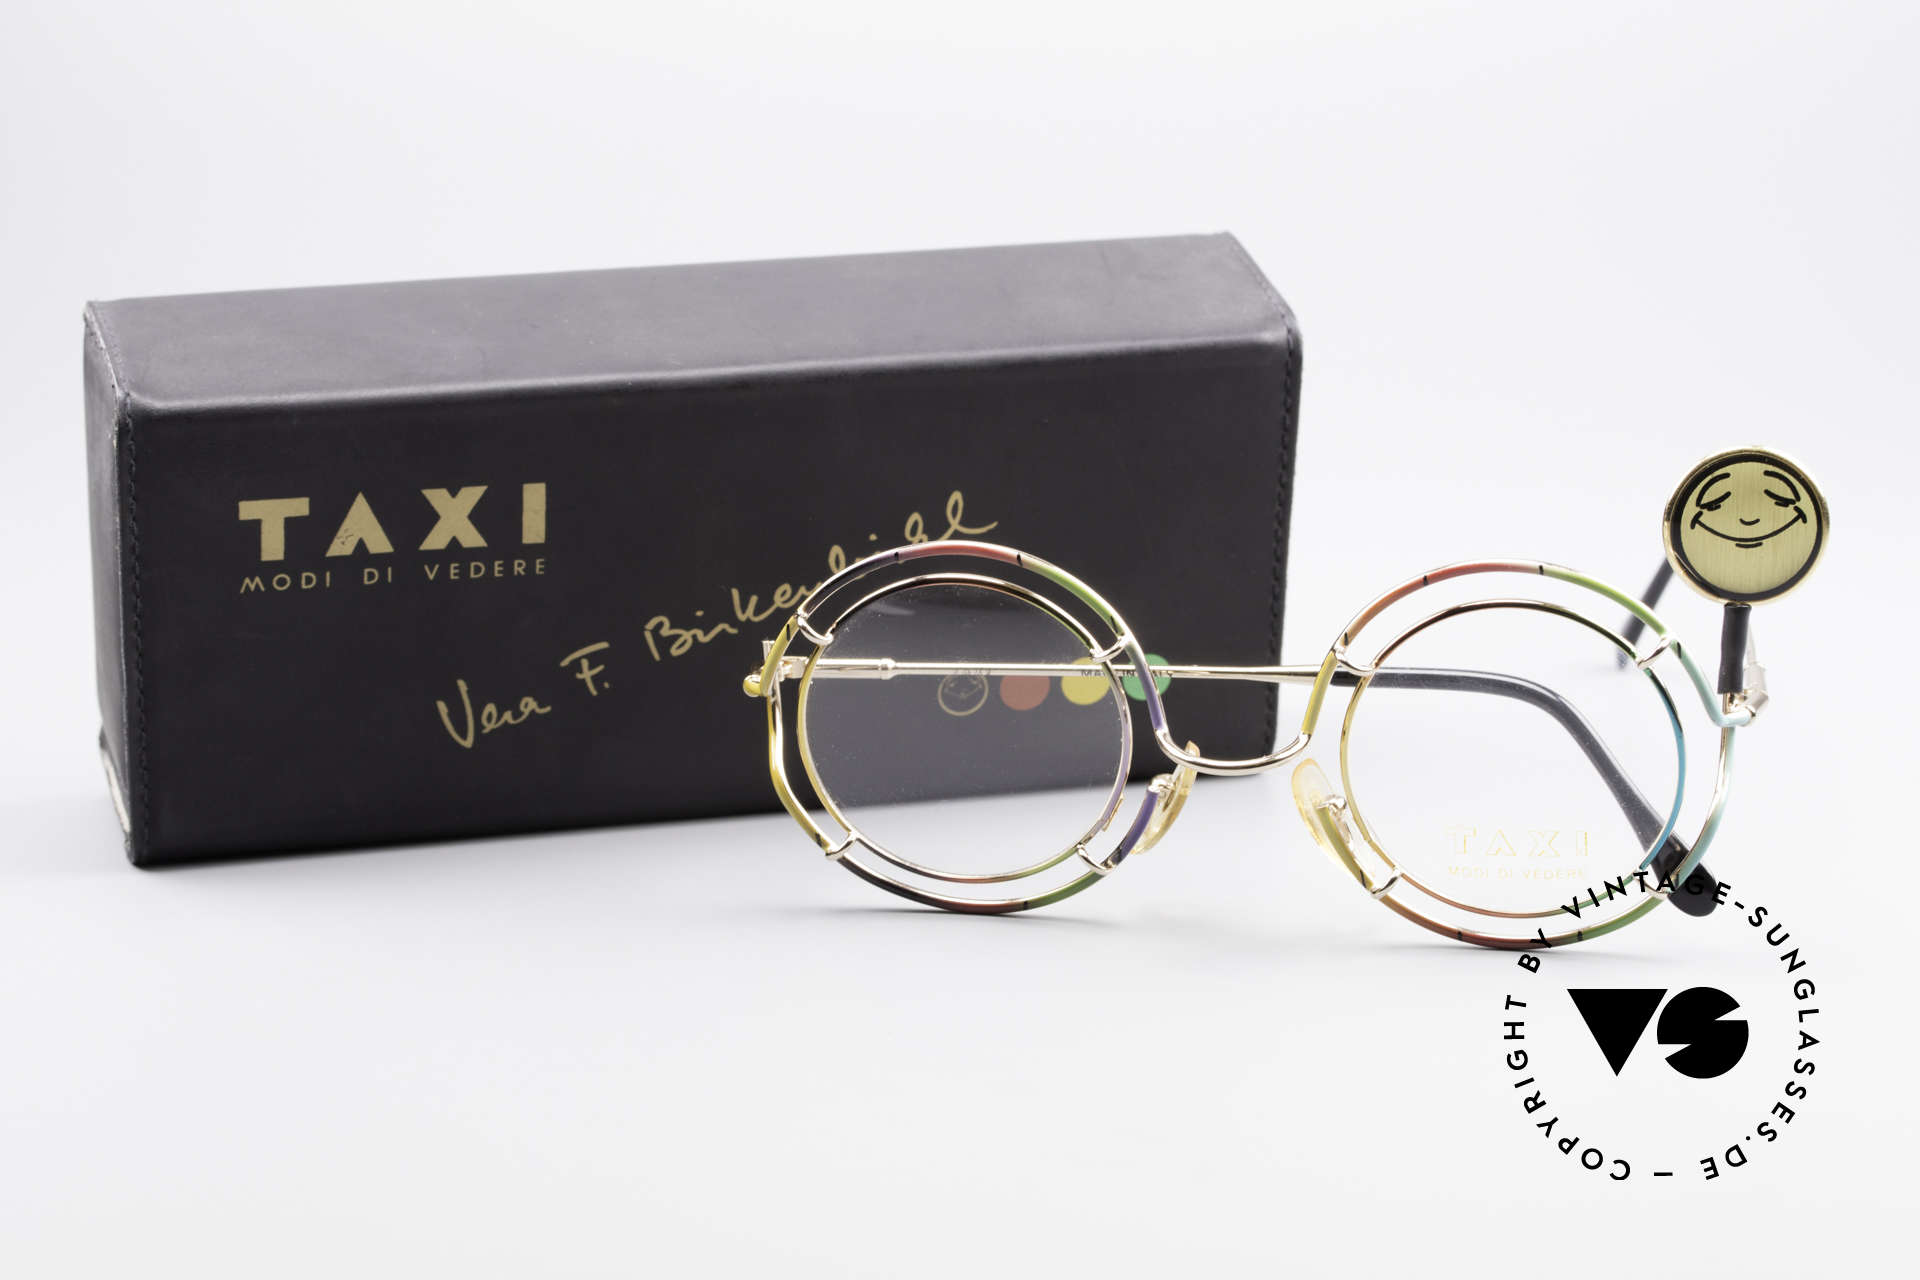 Taxi ST7 by Casanova Birkenbihl Communication Glasses, so, you can create a conversation base without words ;), Made for Men and Women